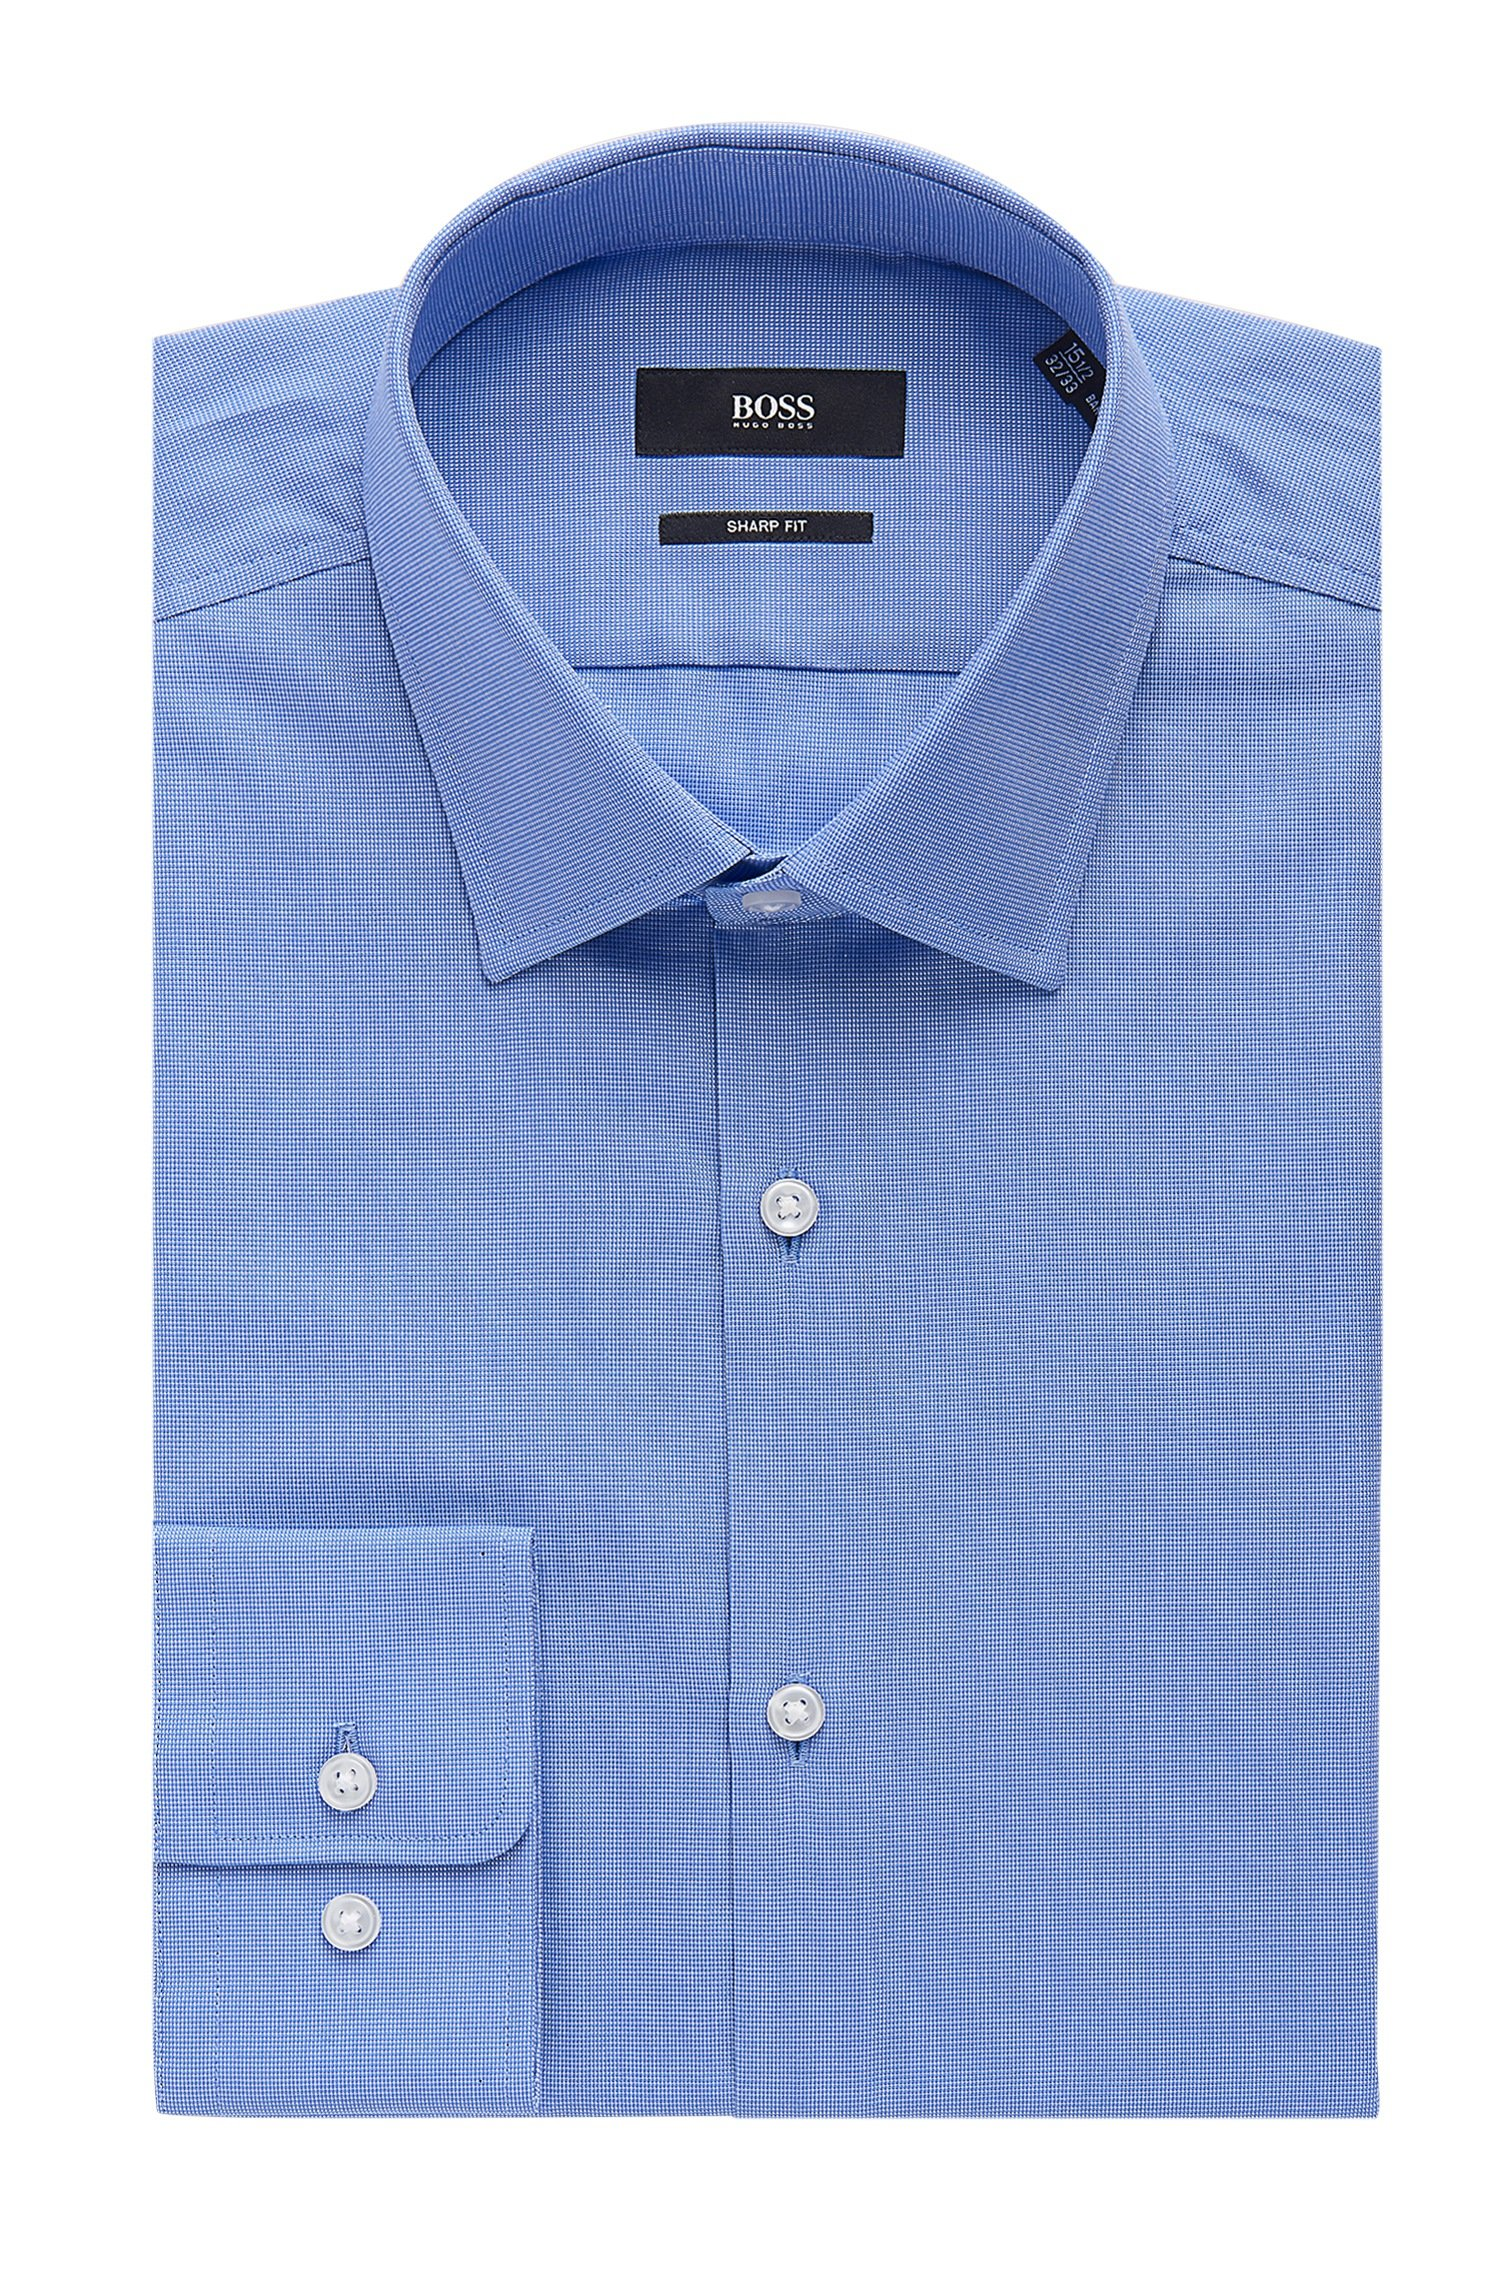 Hugo Boss Nailhead Cotton Dress Shirt, Sharp Fit Marley US (Light Blue, 17.5 x 34/35)